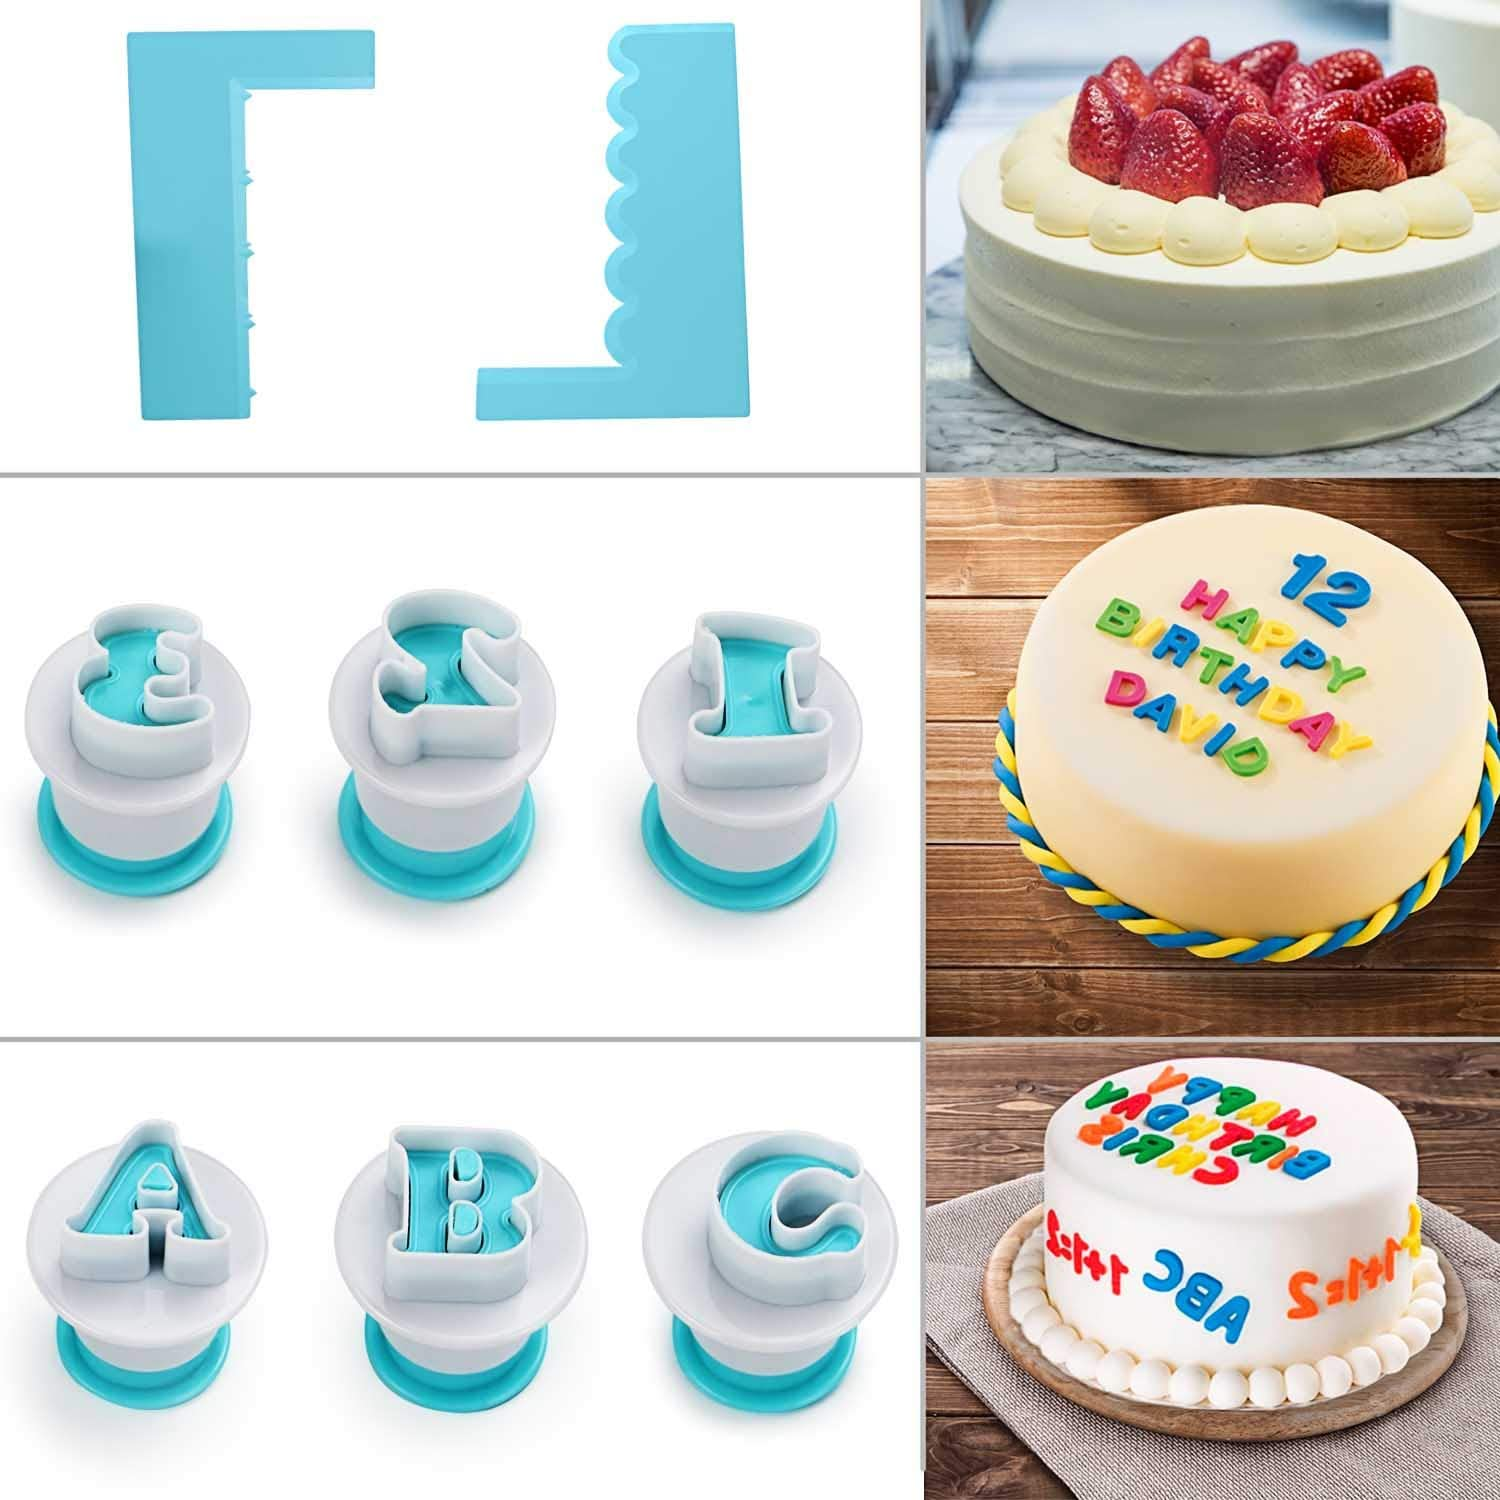 36pcs//2 Sets Alphabet and Numbers Fondant Cake Mold Cookie Stamp Impress Upper Case Numbers Shape DIY Cookie Biscuit Mold with 2 Cake Scraper and 3 Different Rectangle Cake Scraper